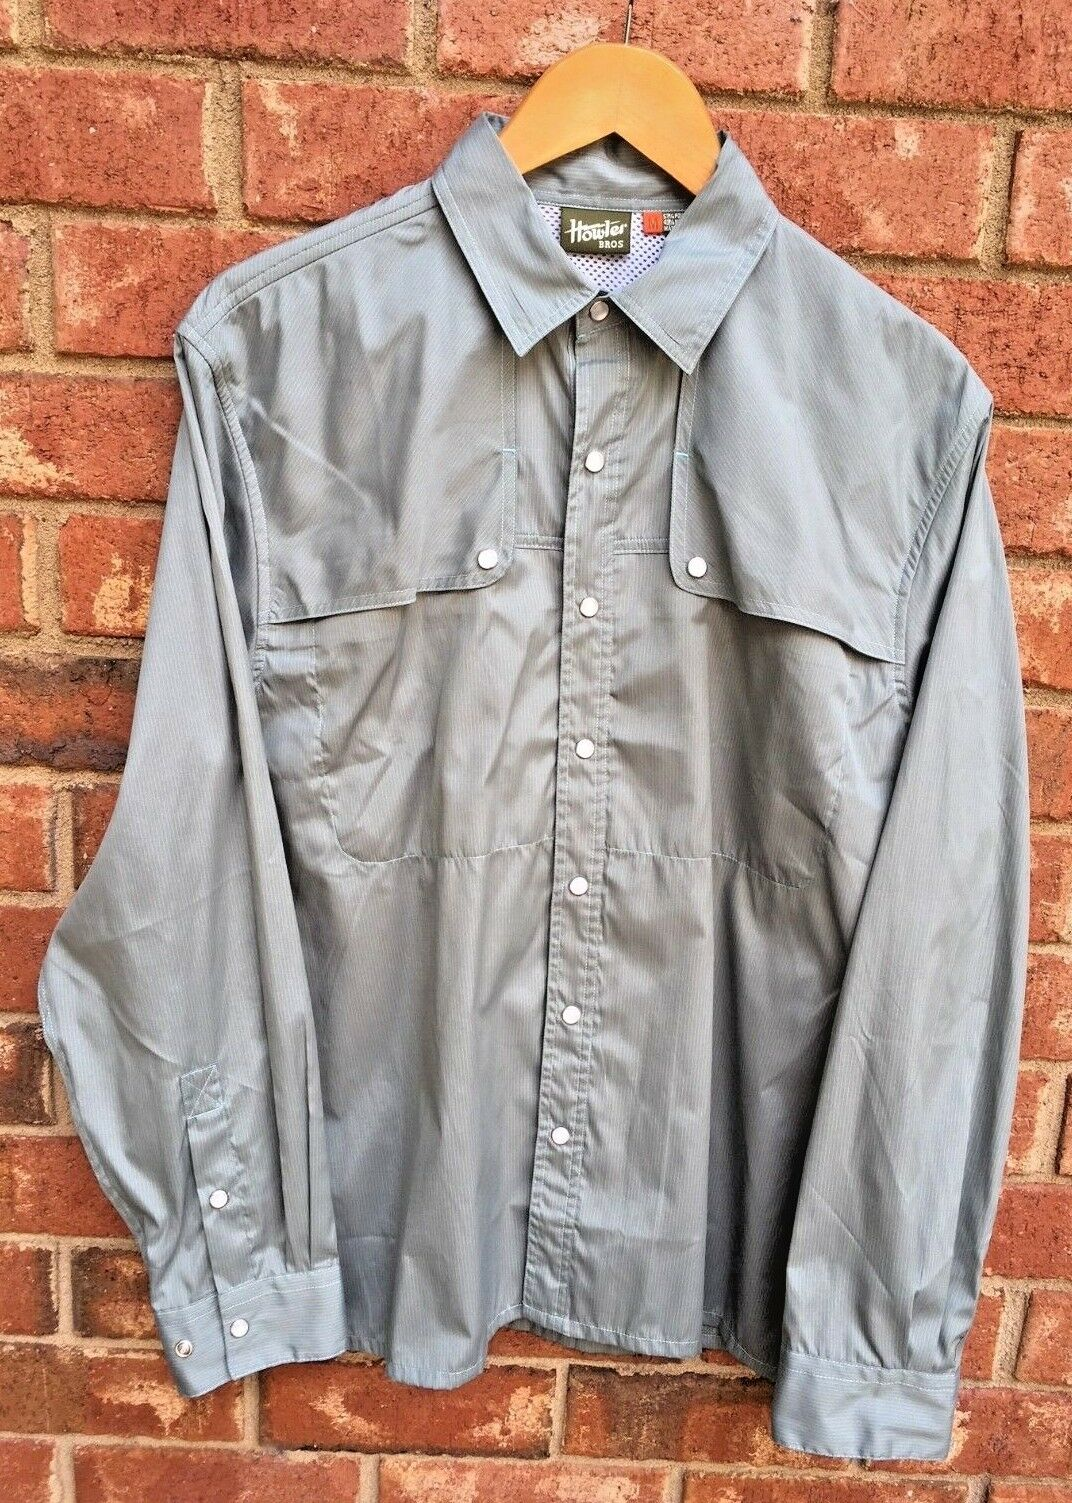 HOWLER BredHERS PESCADOR  LS SHIRT SIXE M (NEW WITH TAGS)